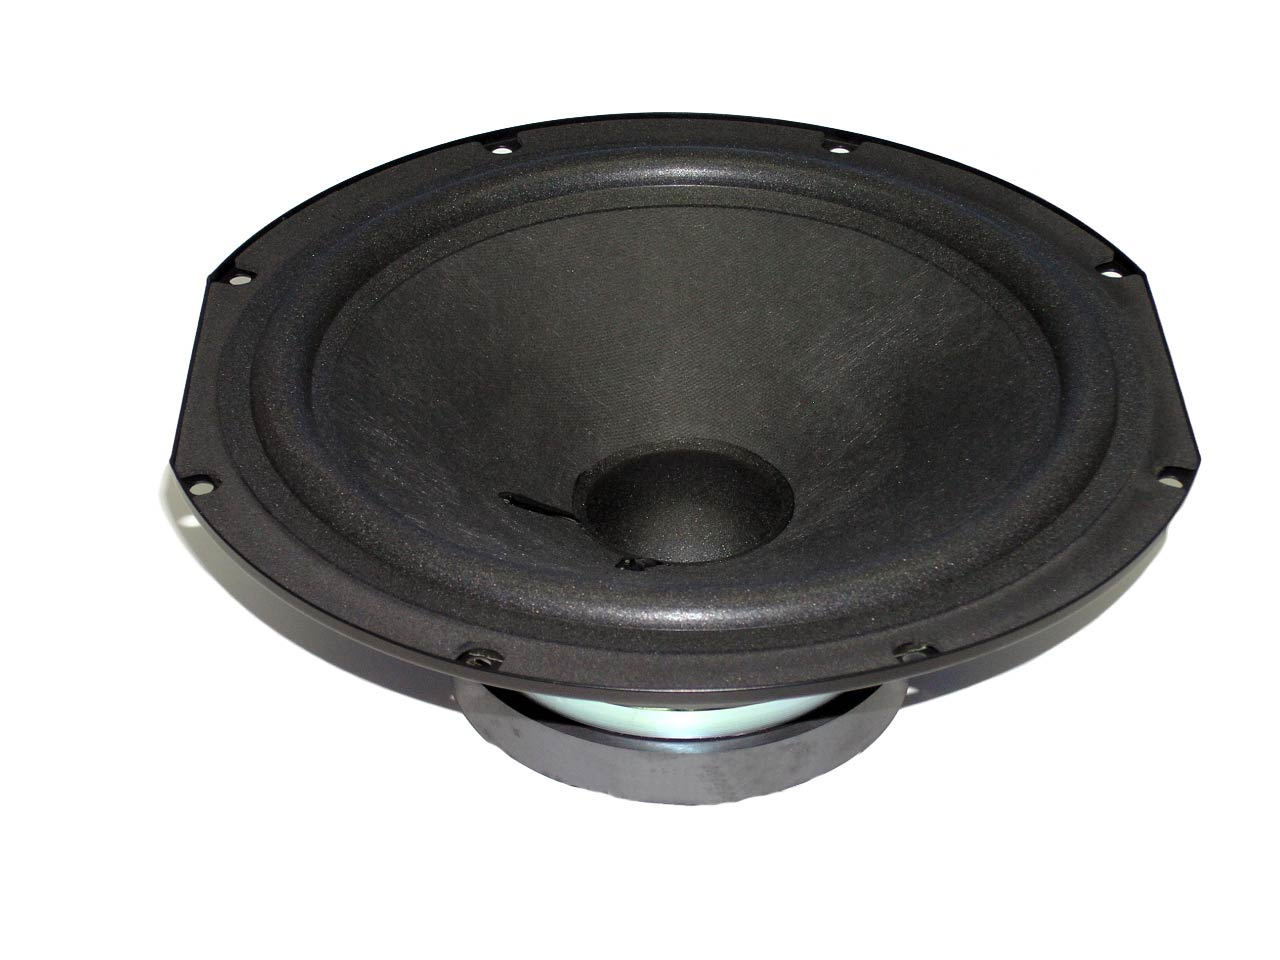 Acoustic Research Factory Replacement Woofer, AR3, AR9, 58, 98, LST, Others, 12100032 by